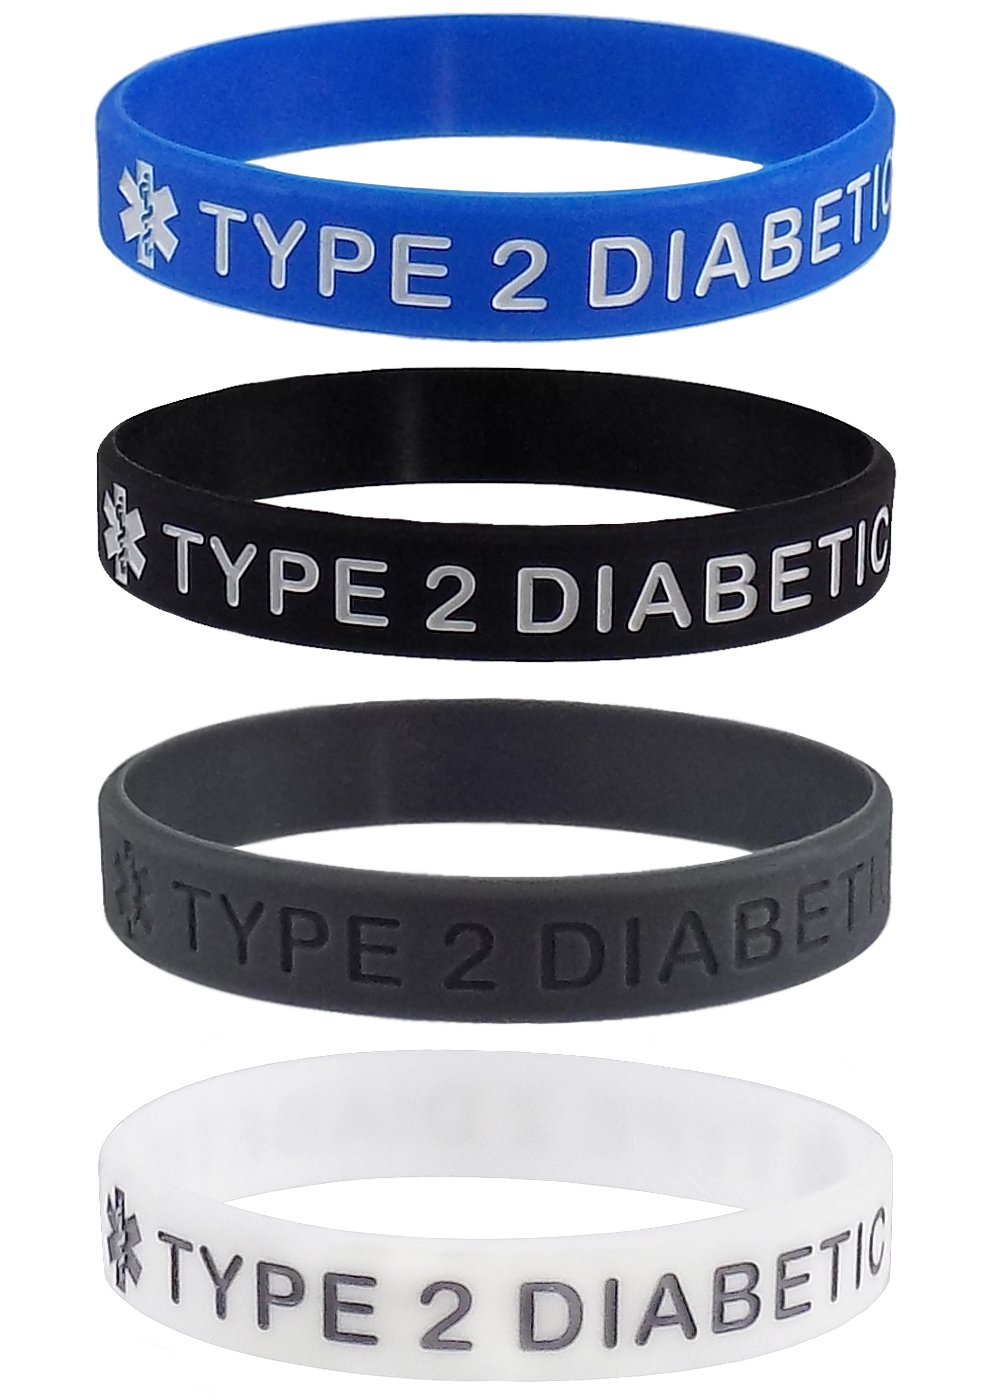 Max Petals Type 2 Diabetic Medical Alert ID Silicone Bracelet Wristbands 4 Pack (Adult - 8 inches) by Max Petals